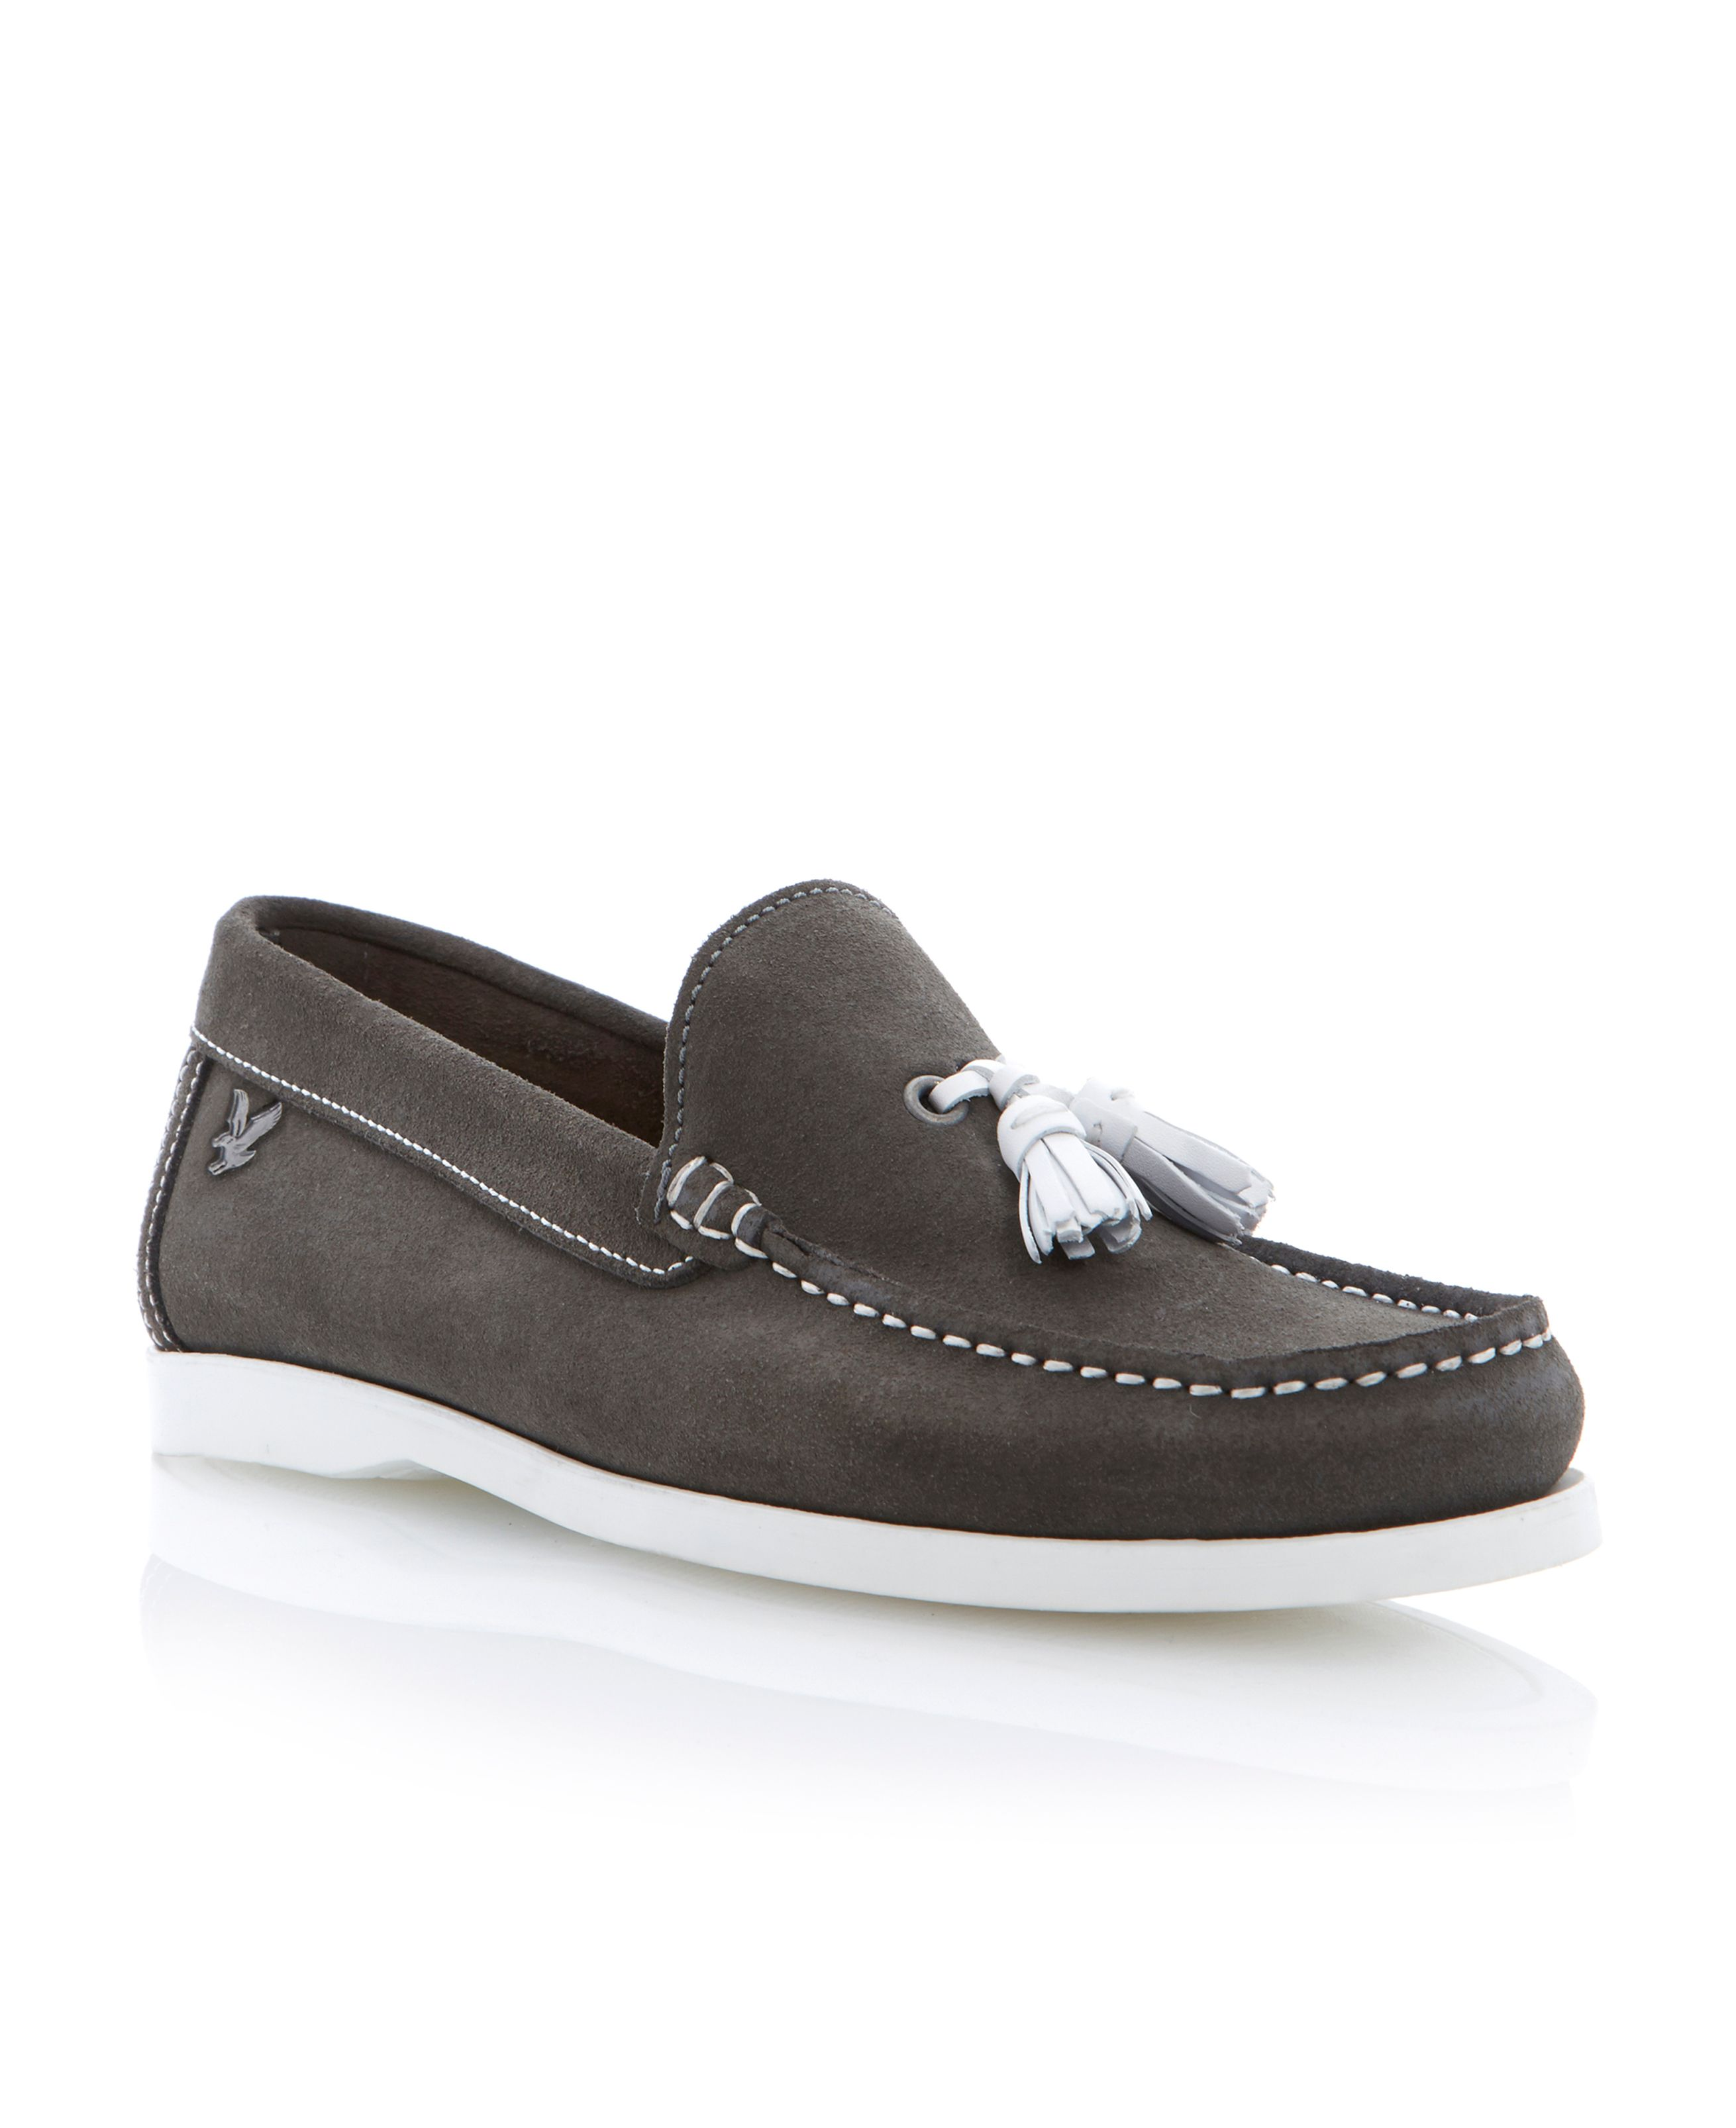 Tay moccasin shoes